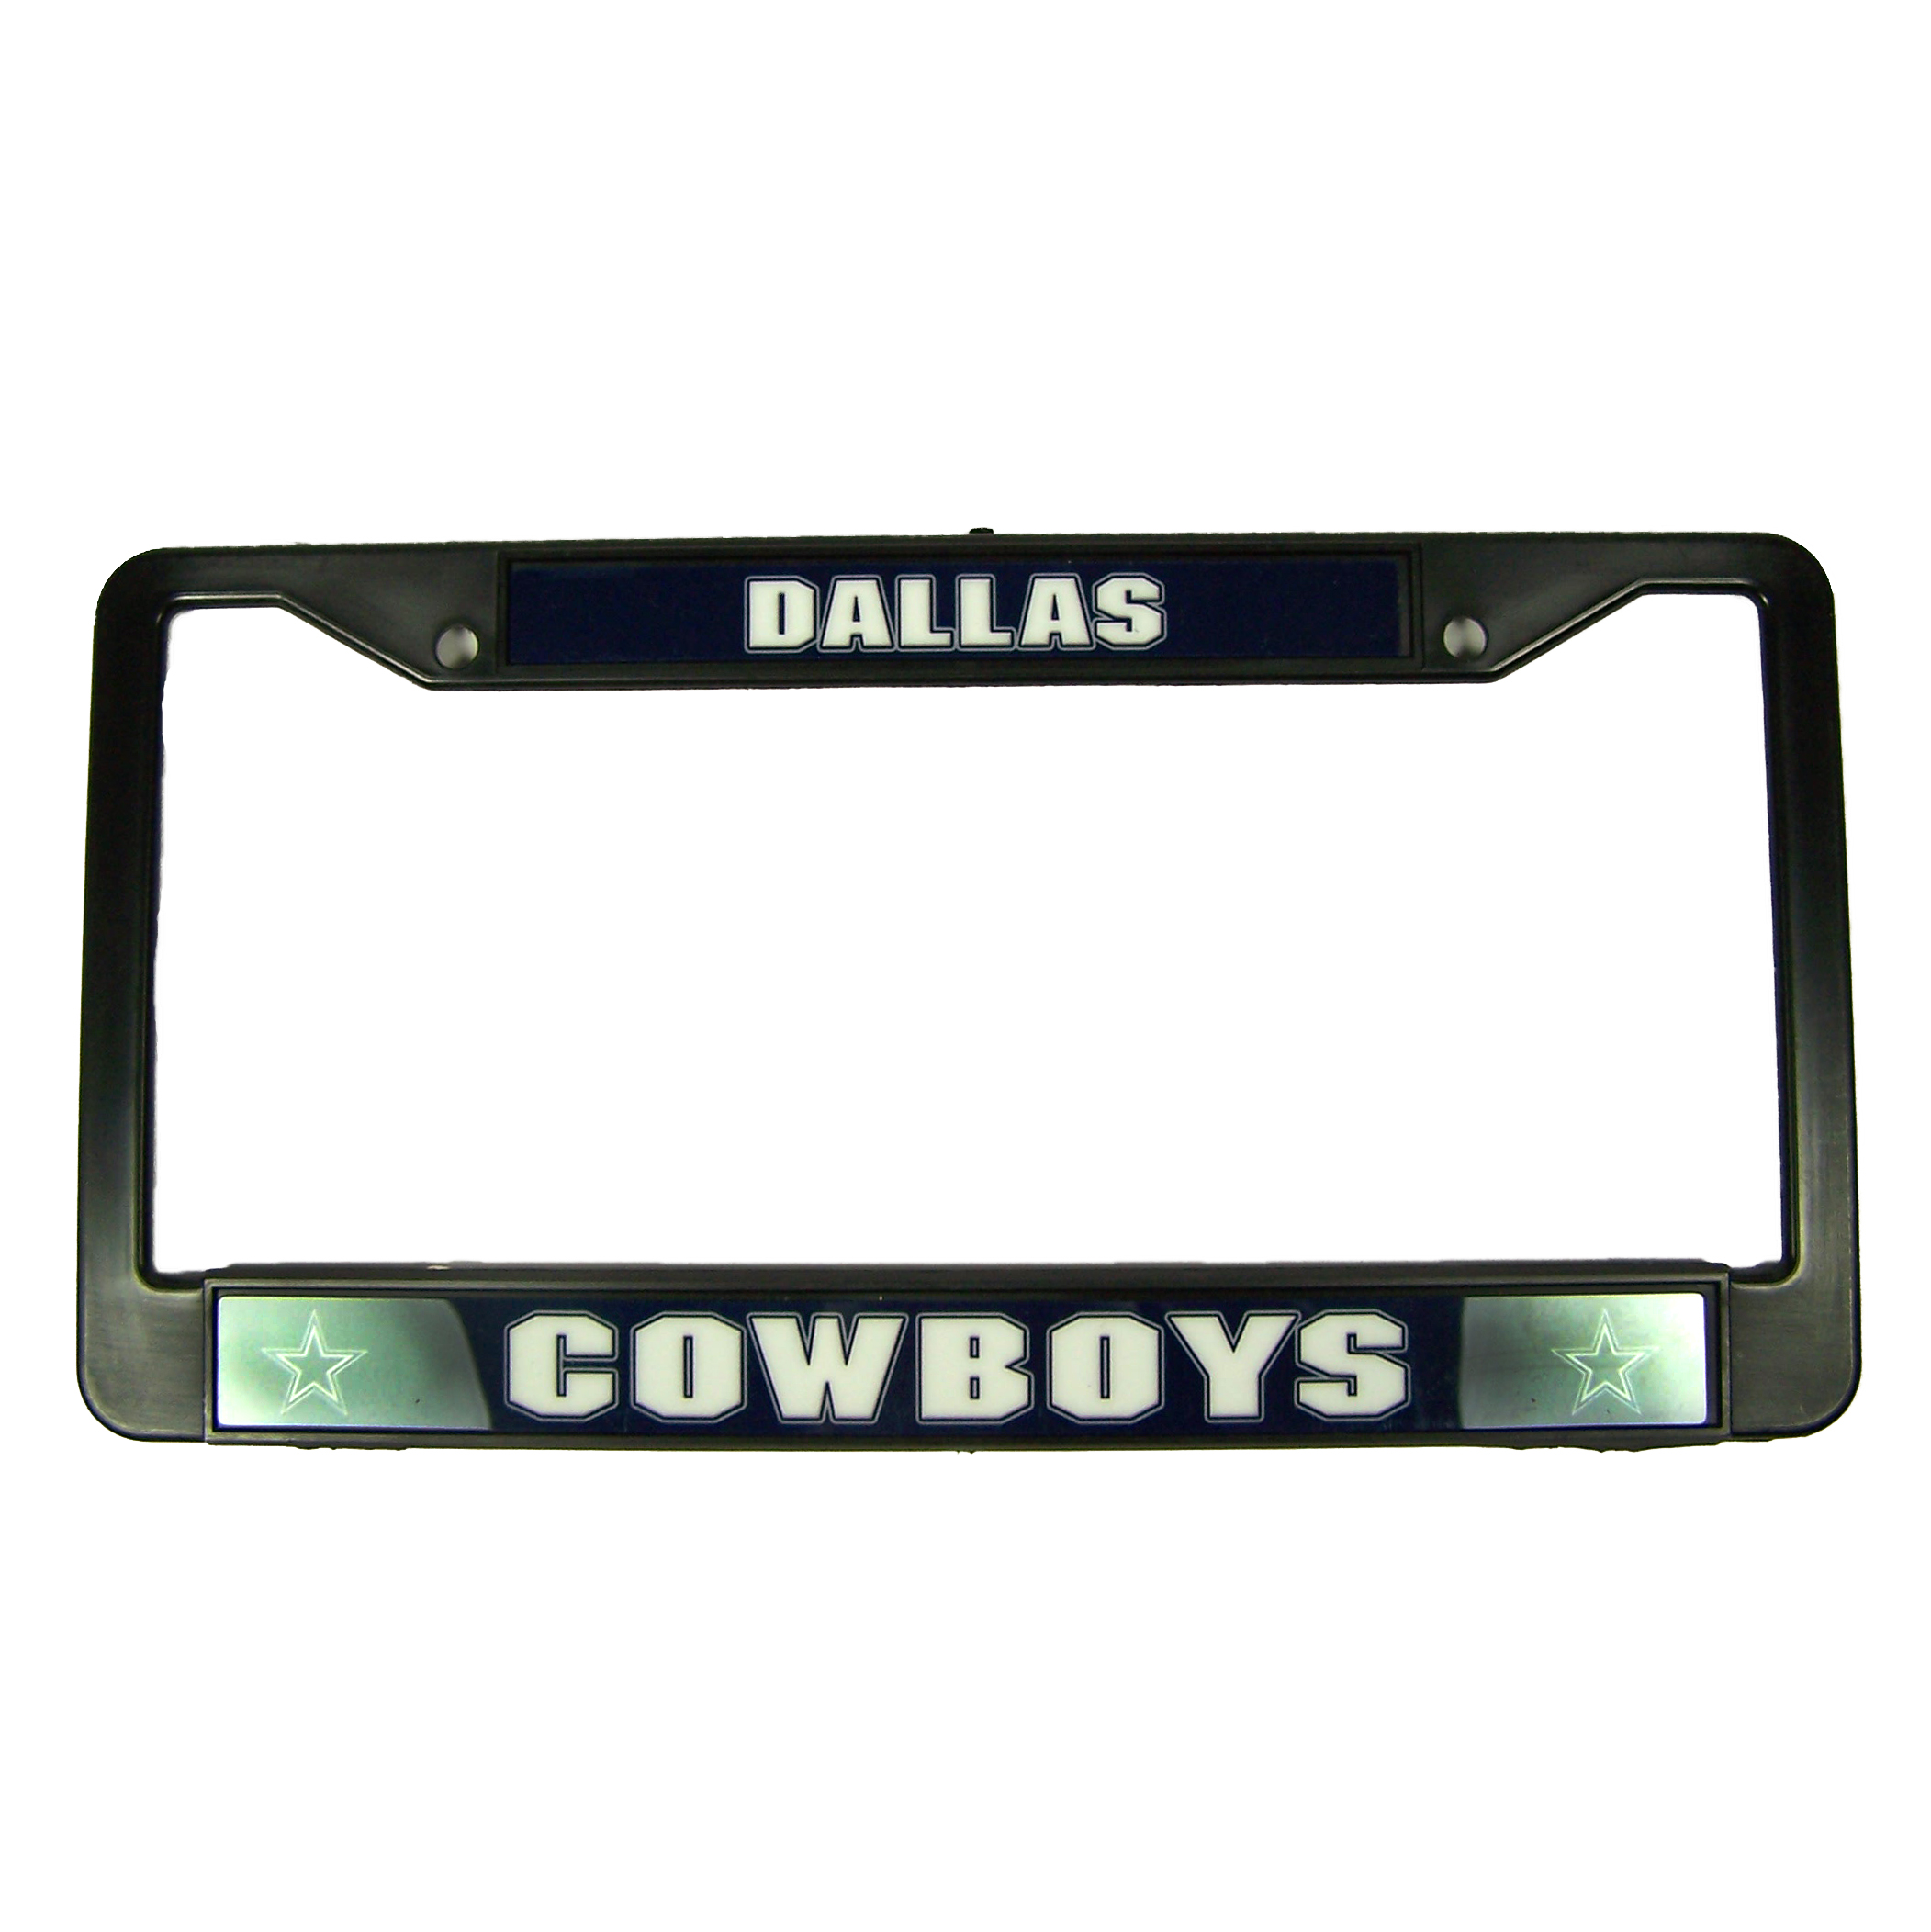 Dallas Cowboys Official NFL 12 inch x 6 inch Black License Plate Frame by Rico Industries